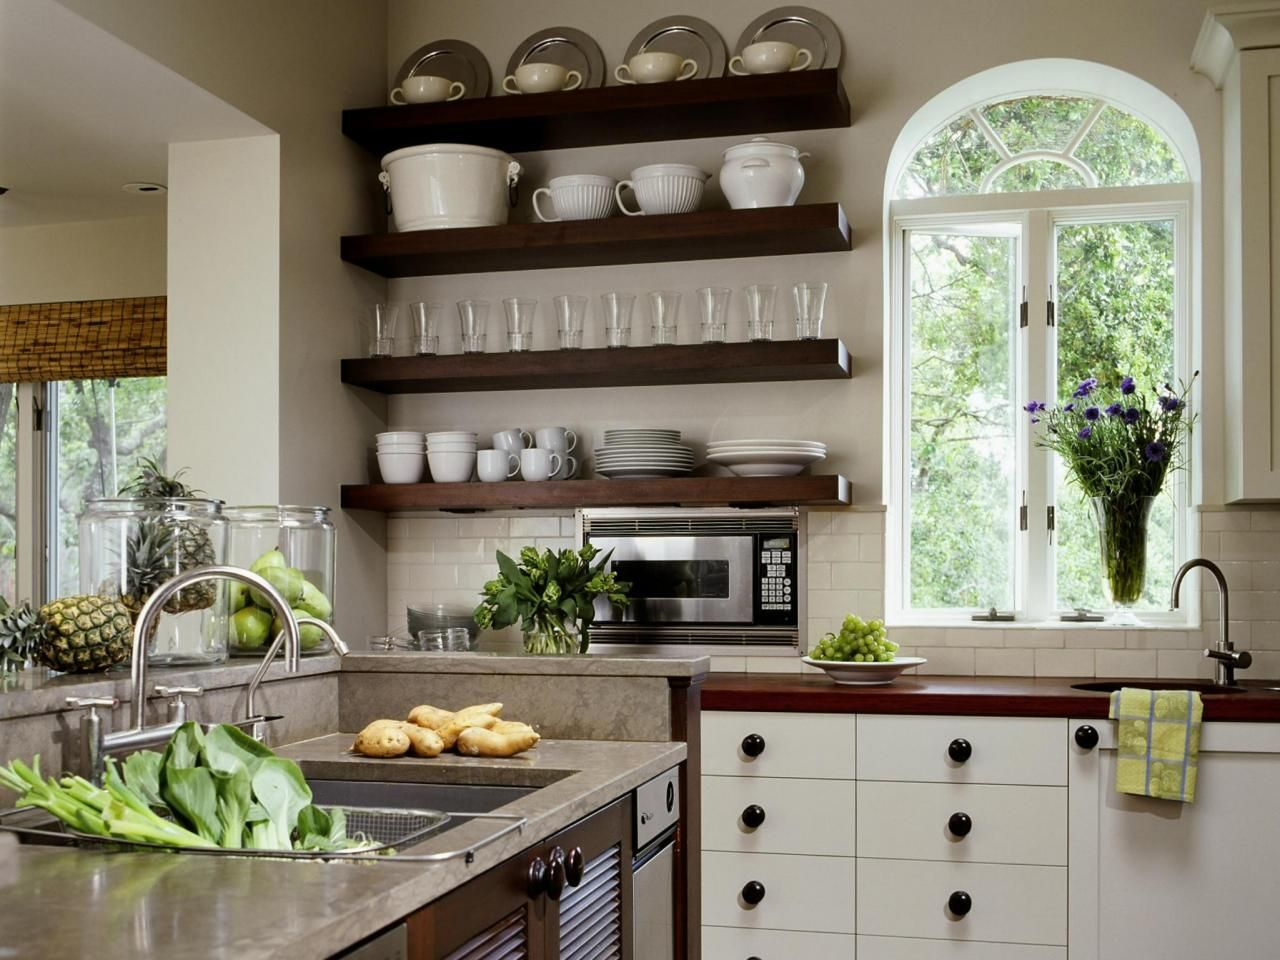 Floating shelves used to store dishes and a large window